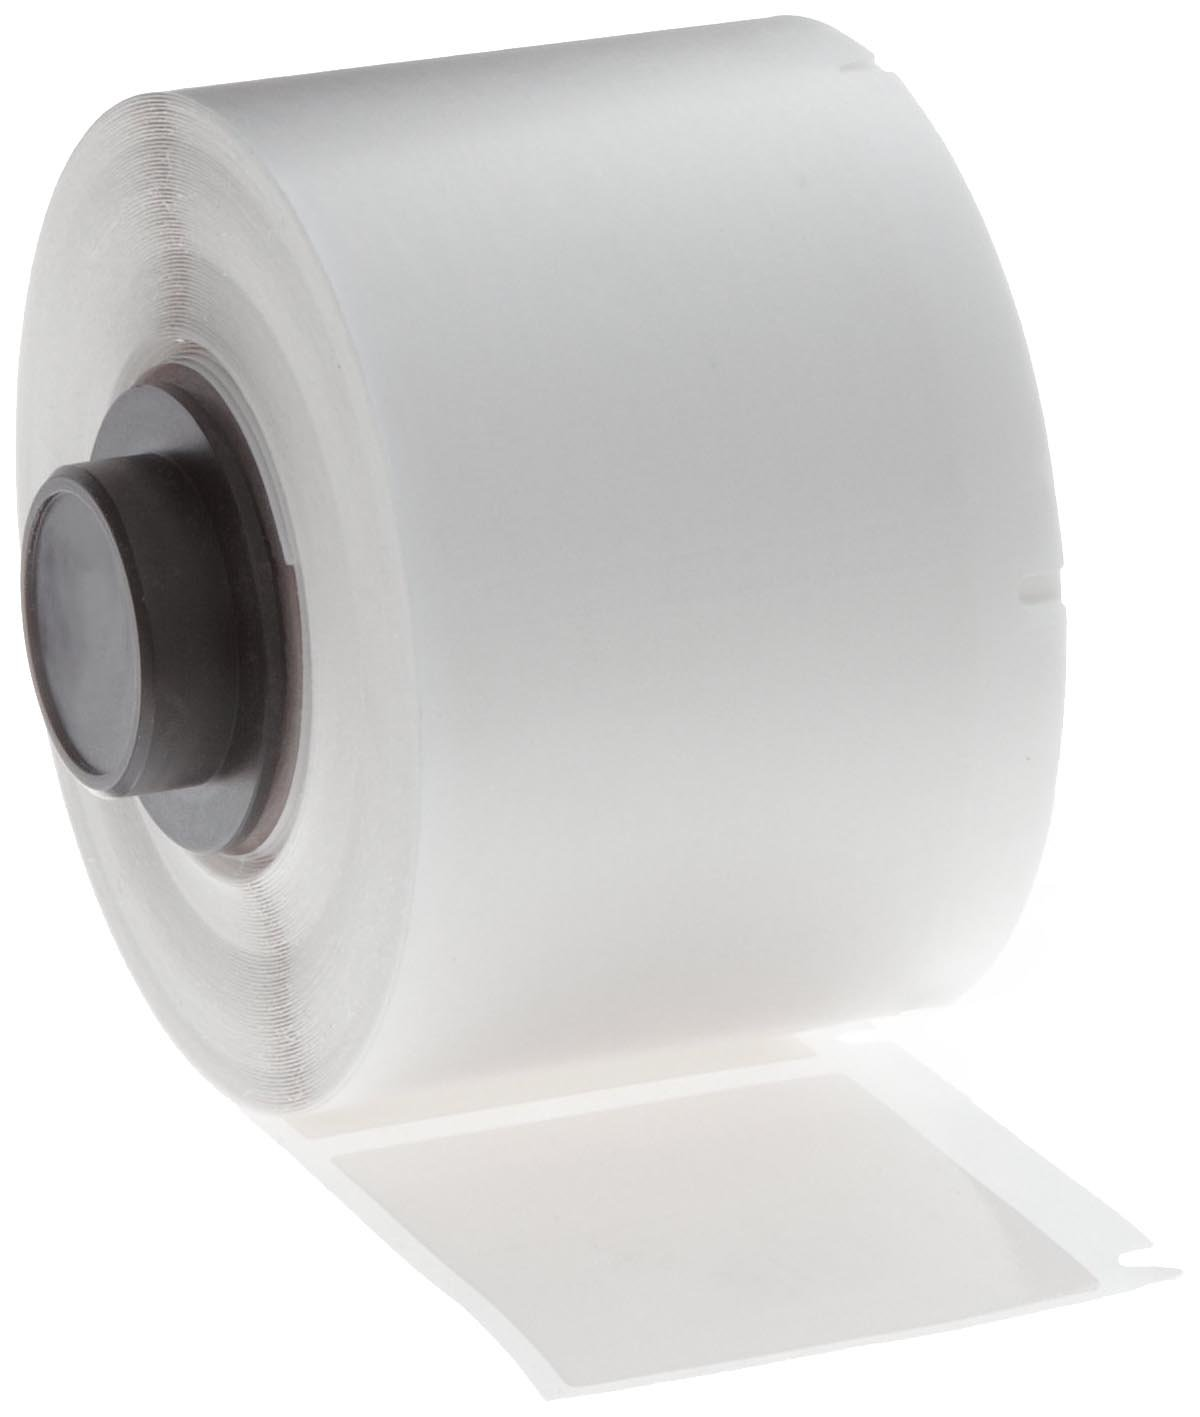 Brady PTL-29-498 TLS 2200 And TLS PC Link 0.5 Height B-498 Repositionable Vinyl Cloth 1.5 Width 500 Per Roll White Color Label